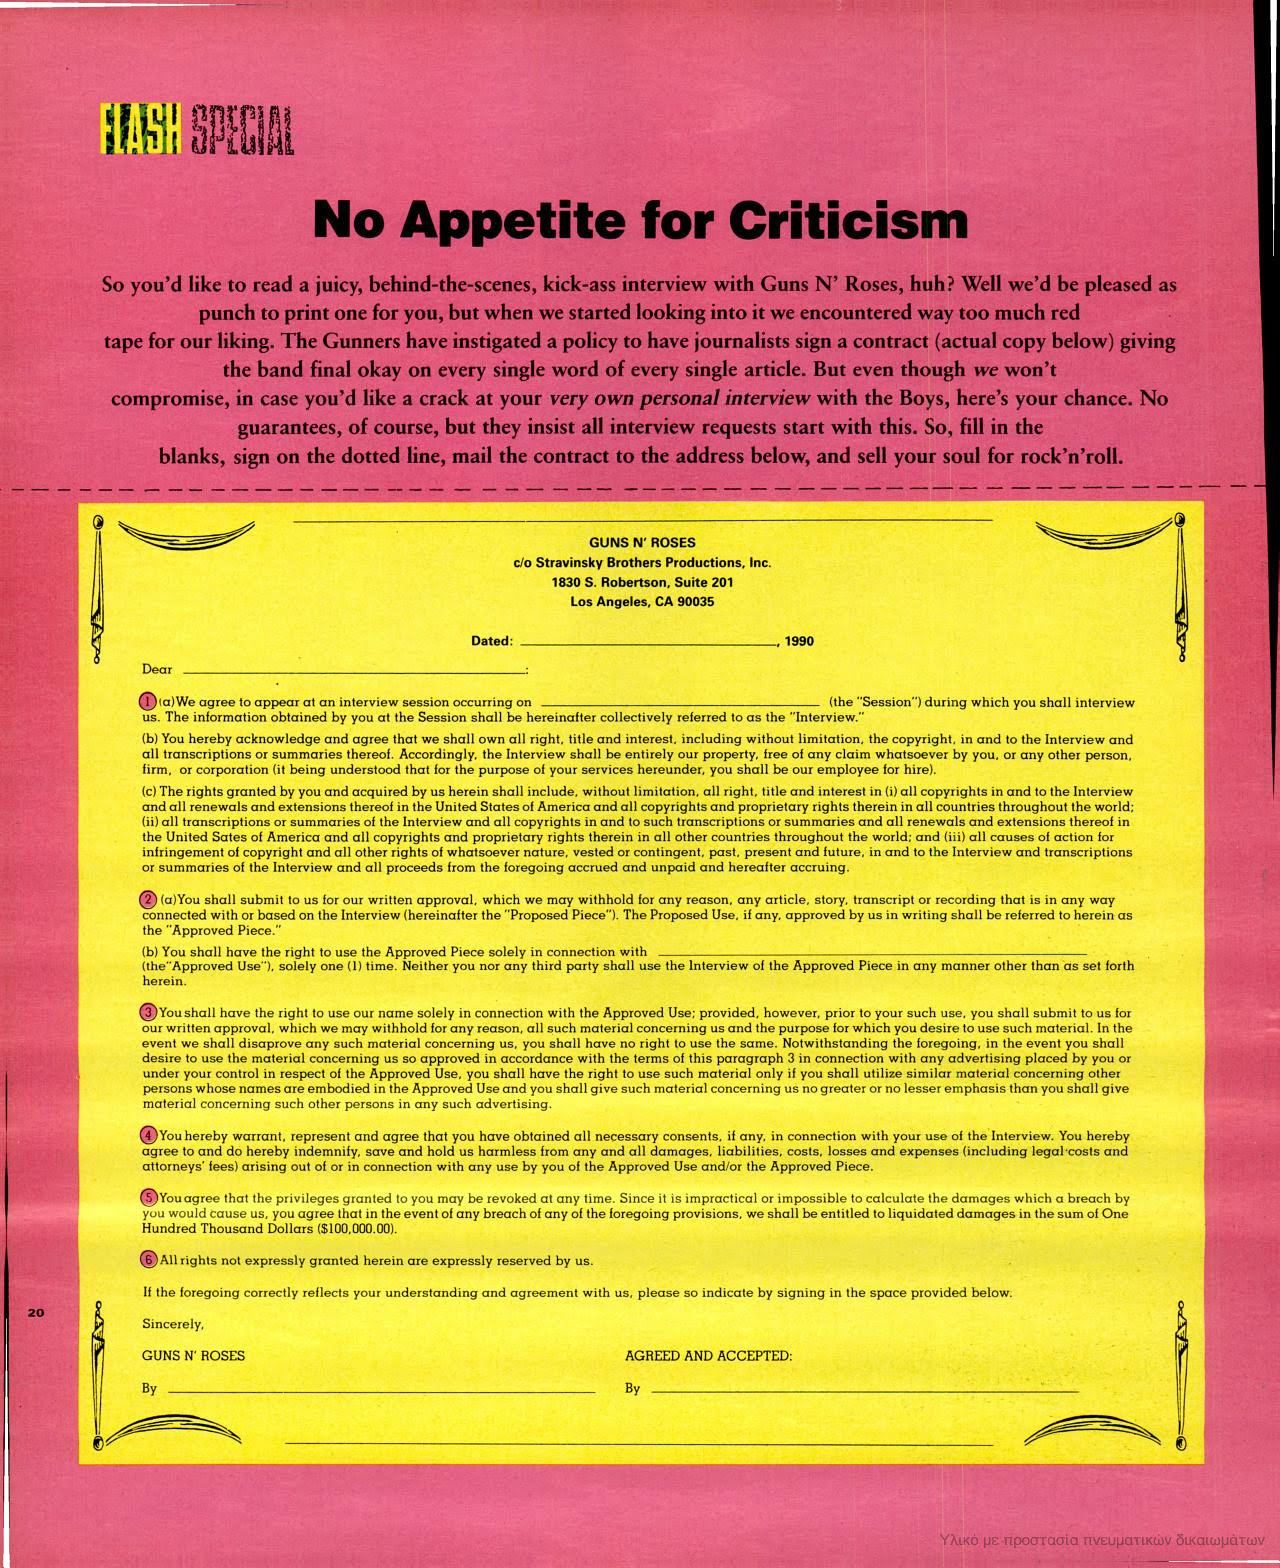 1991.06.DD - Spin Magazine - No Appetite for Criticism (Guns N' Roses contract for the press) LoaPcPj2_o